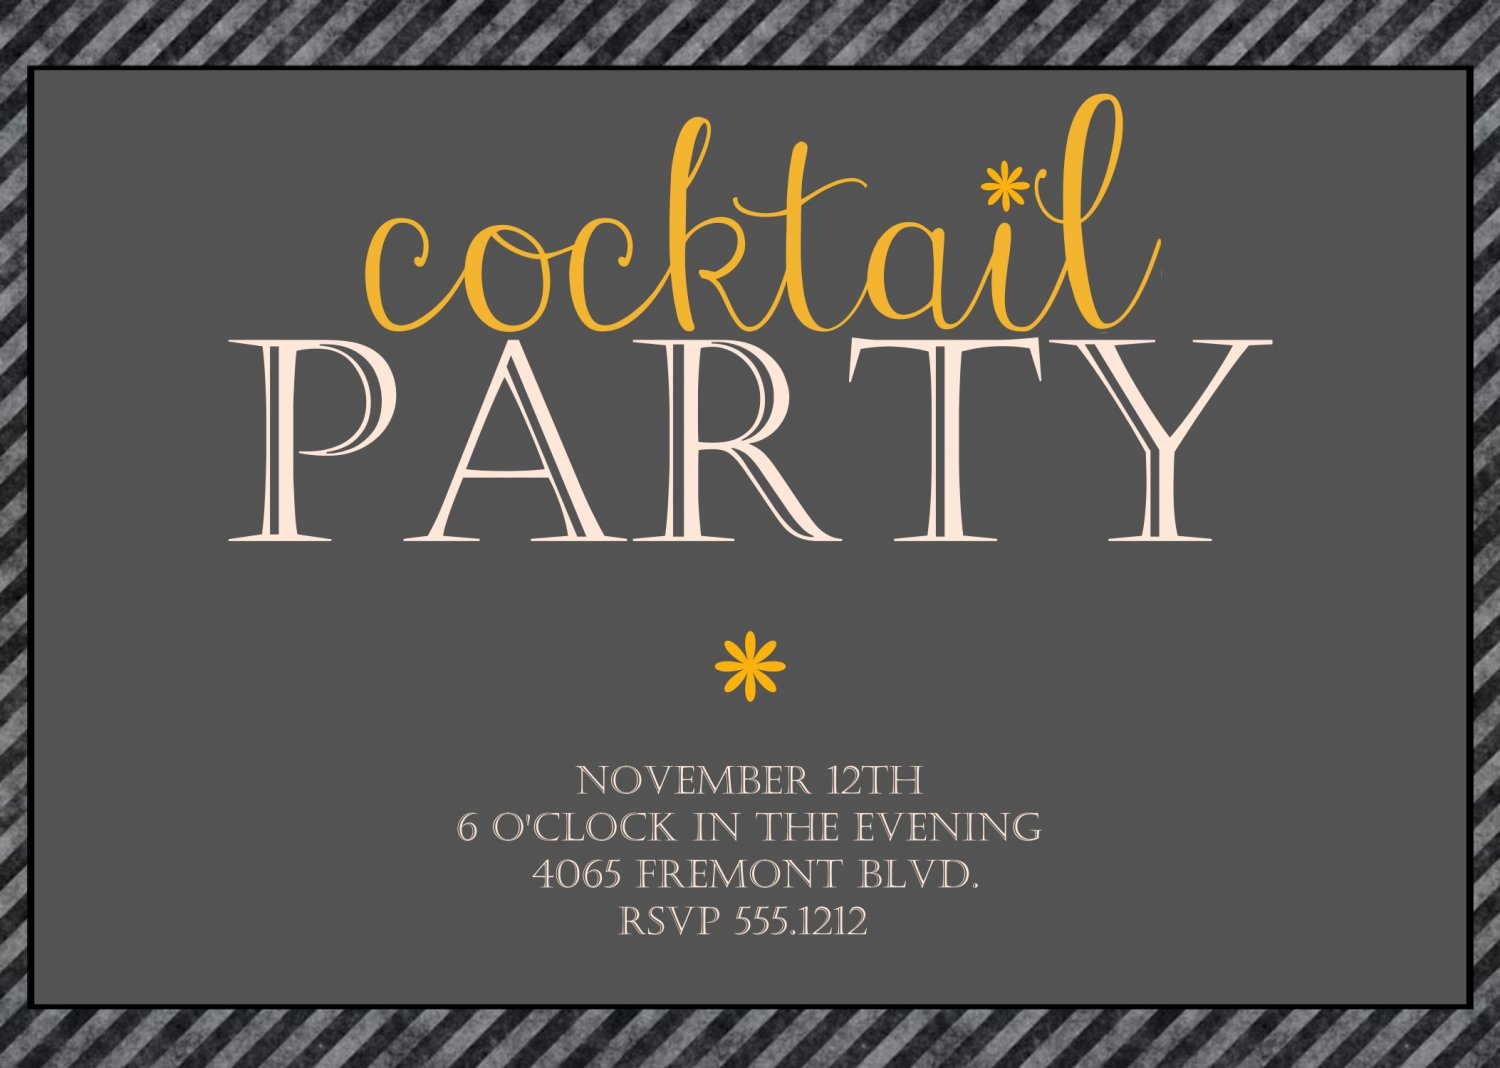 Cocktail Party Invitation, Cocktail Party, DIY Invite, Adult Party